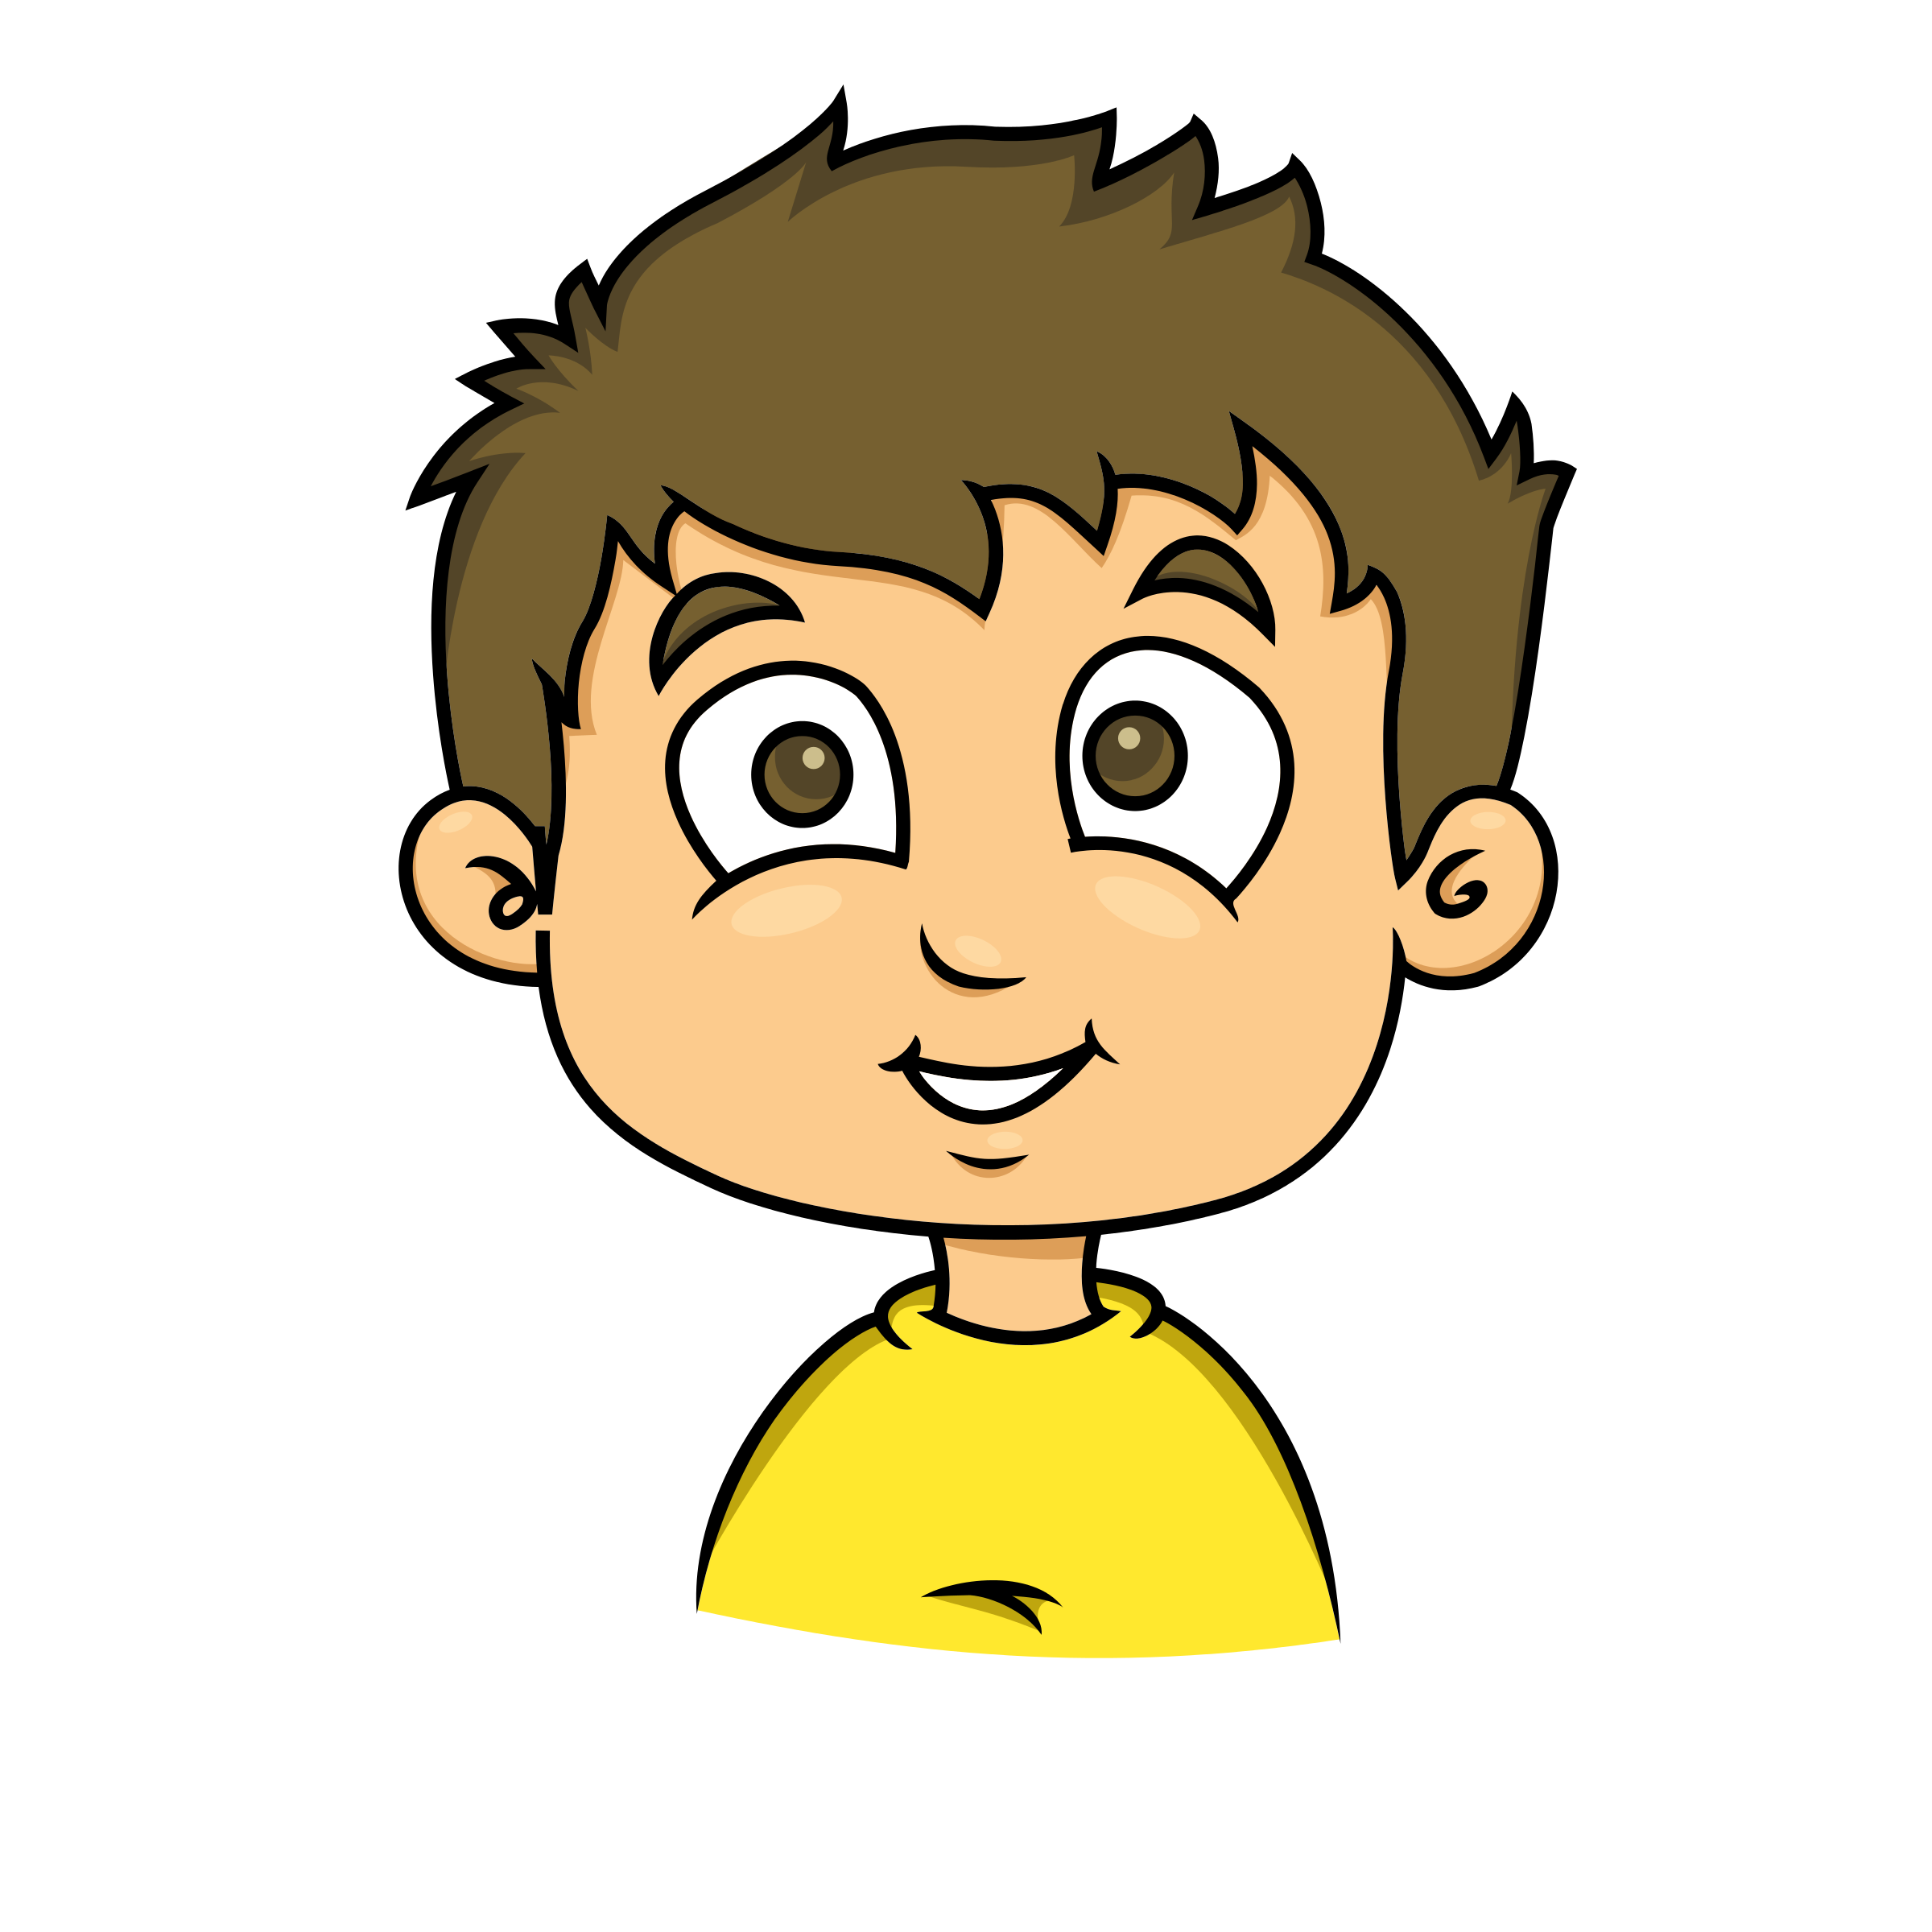 Smiling Face Child - Clipart Library - Clipart Library - Kids Smiling PNG HD